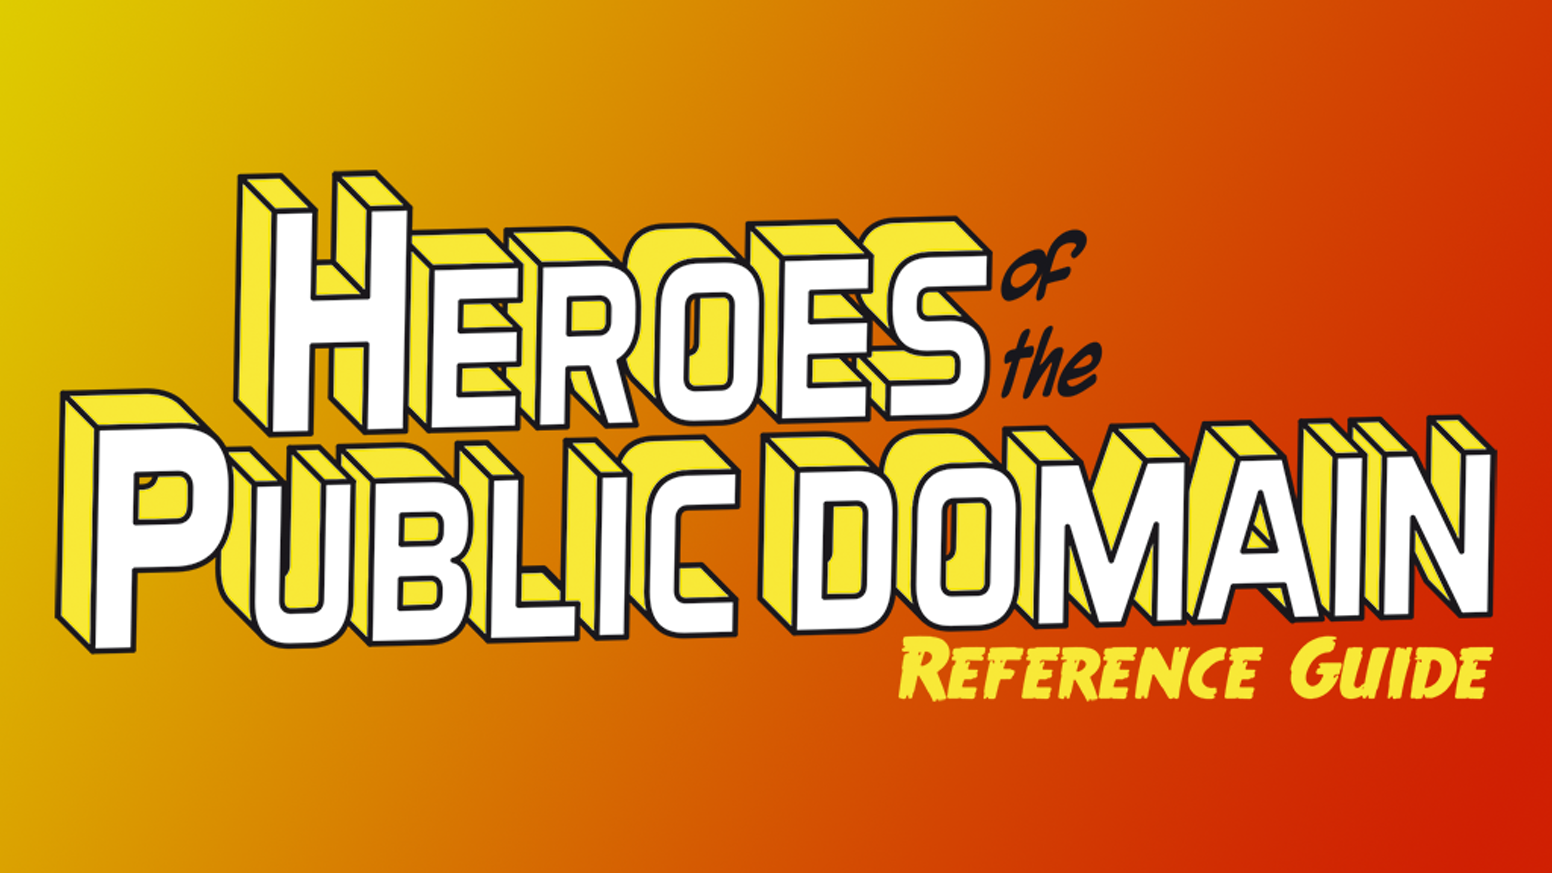 Our goal is to create a series of comic books featuring profiles of heroes that are in the public domain.